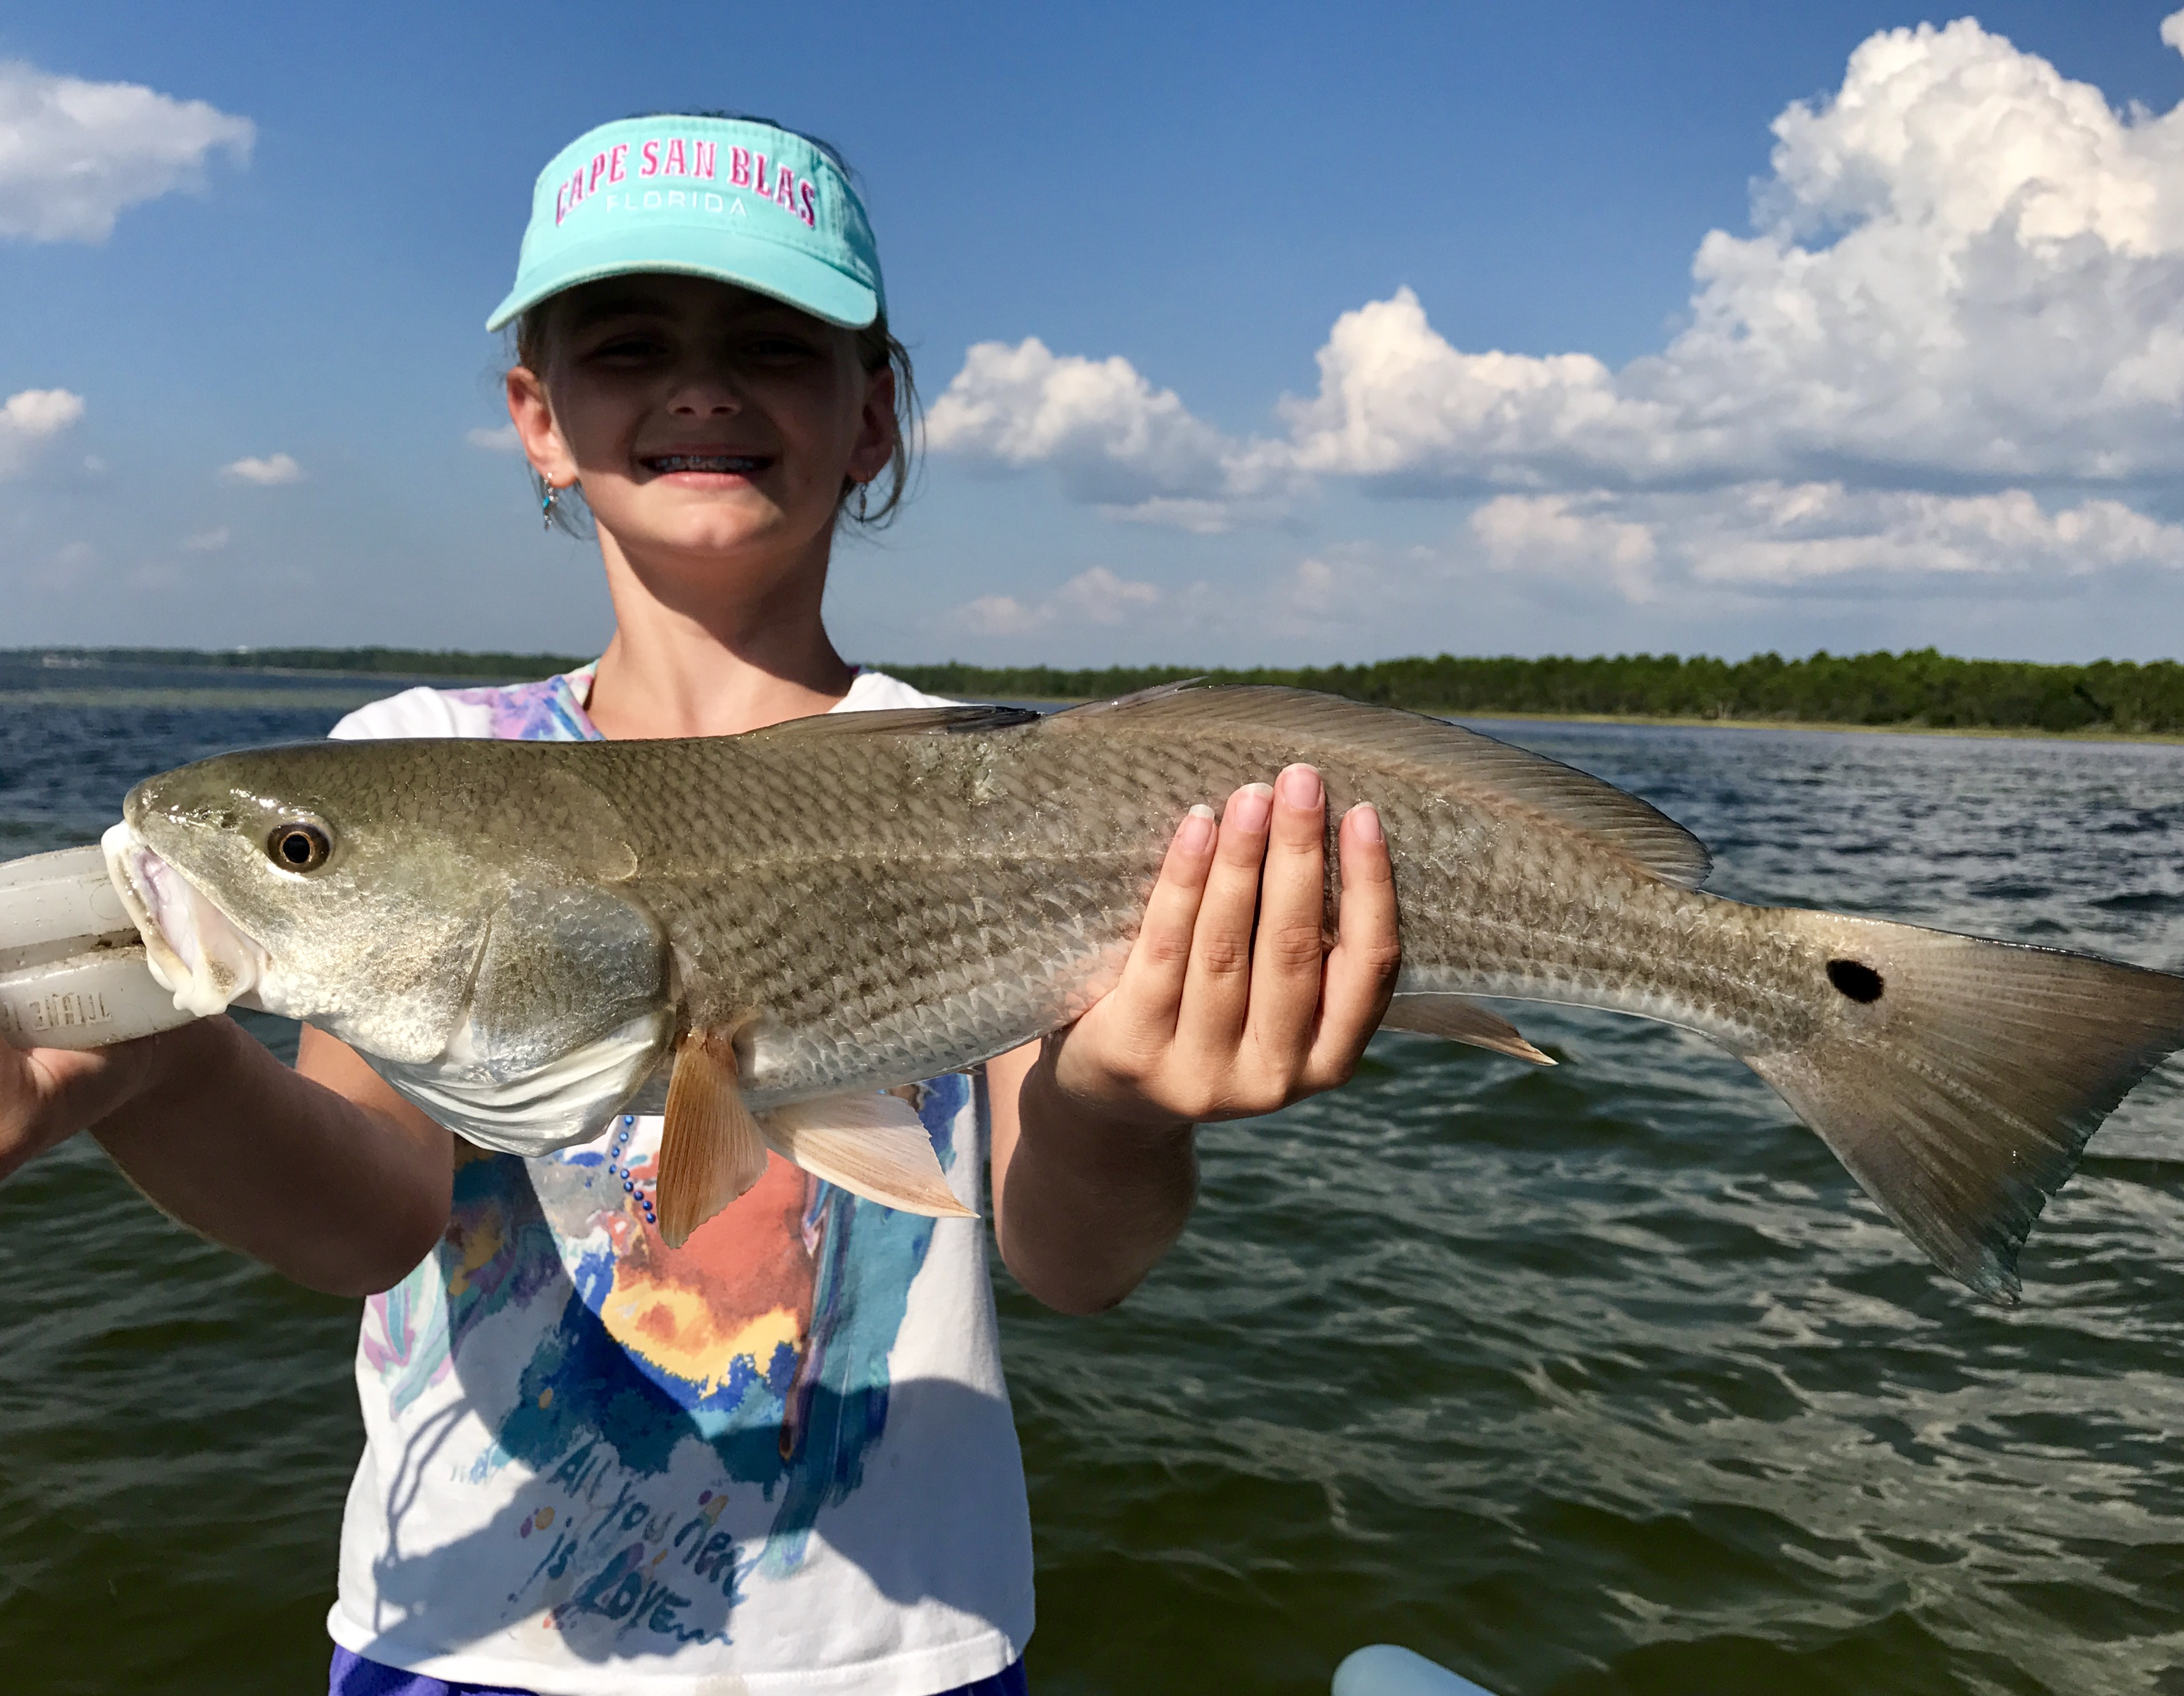 Kids big fish and memories fun perfect cast charters for Big fish cast